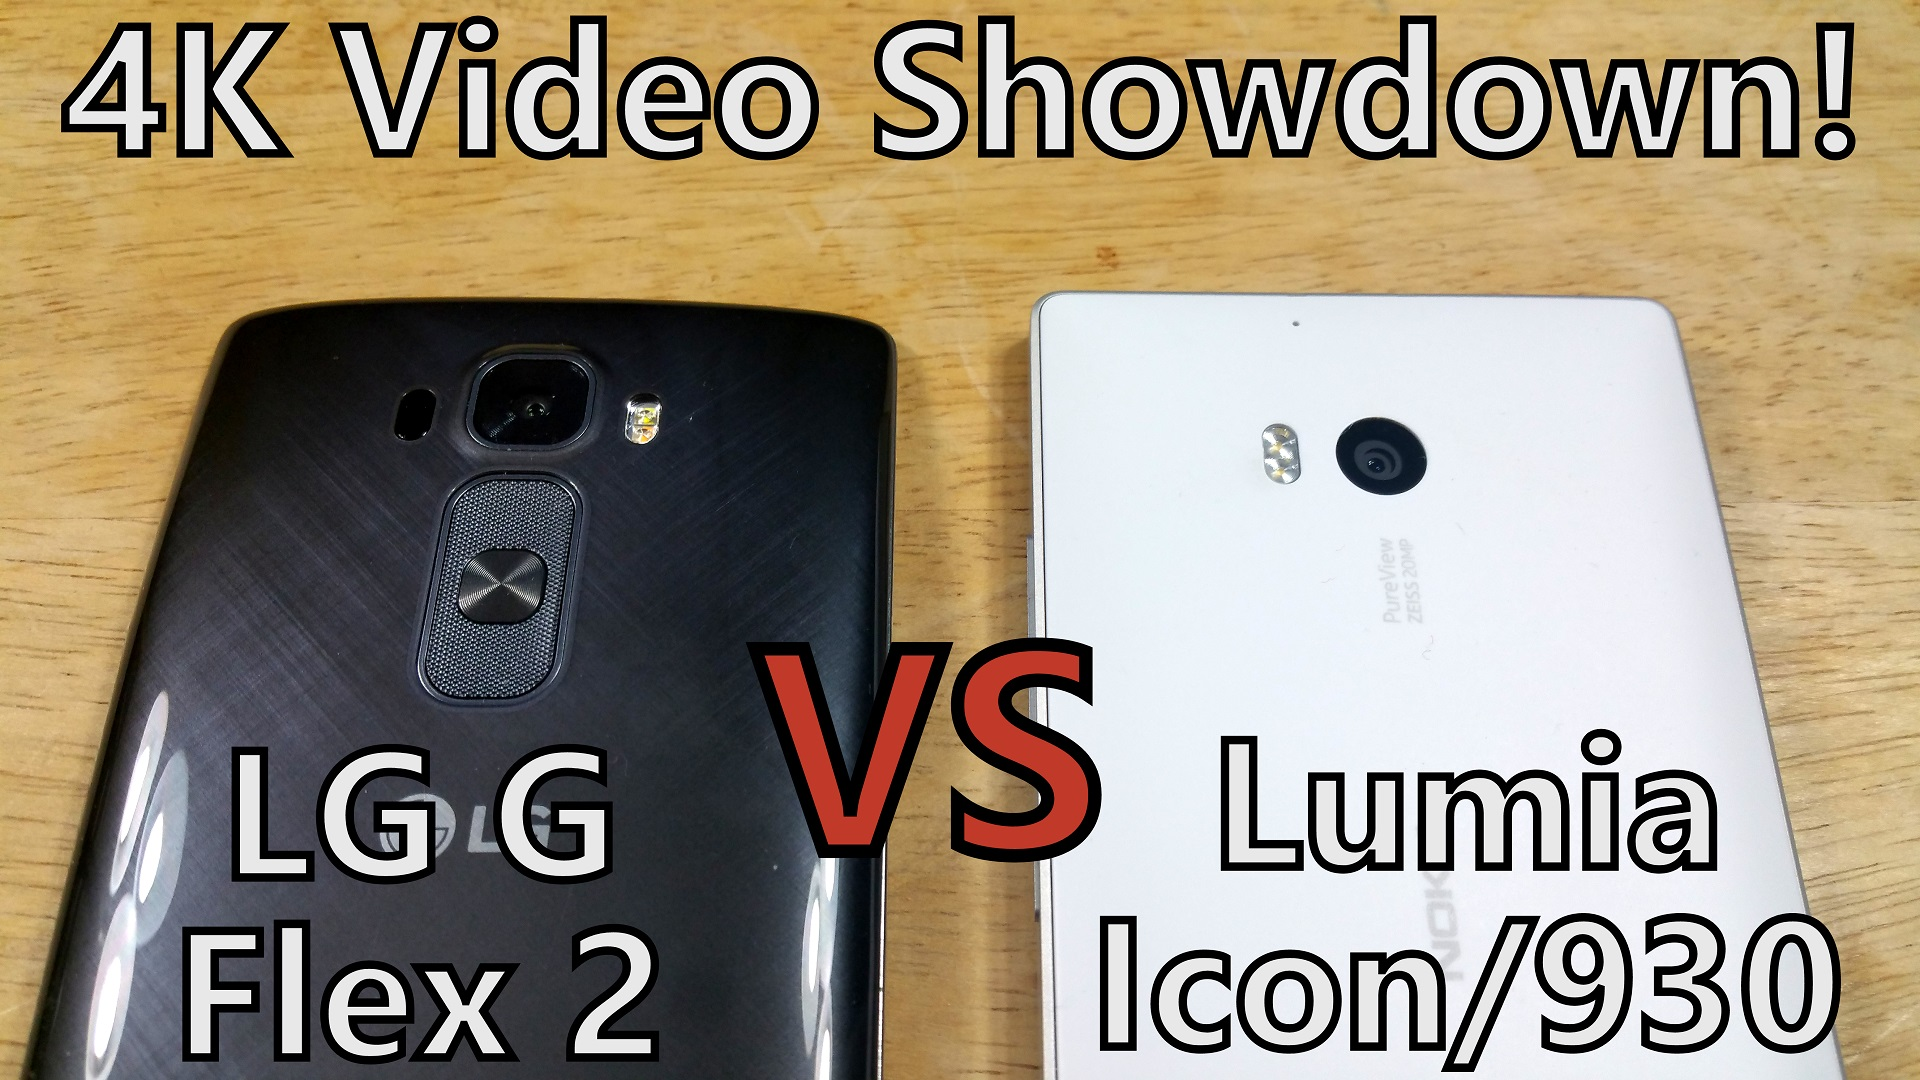 4K Video Showdown! LG G Flex 2 vs Nokia Lumia 930 (Icon